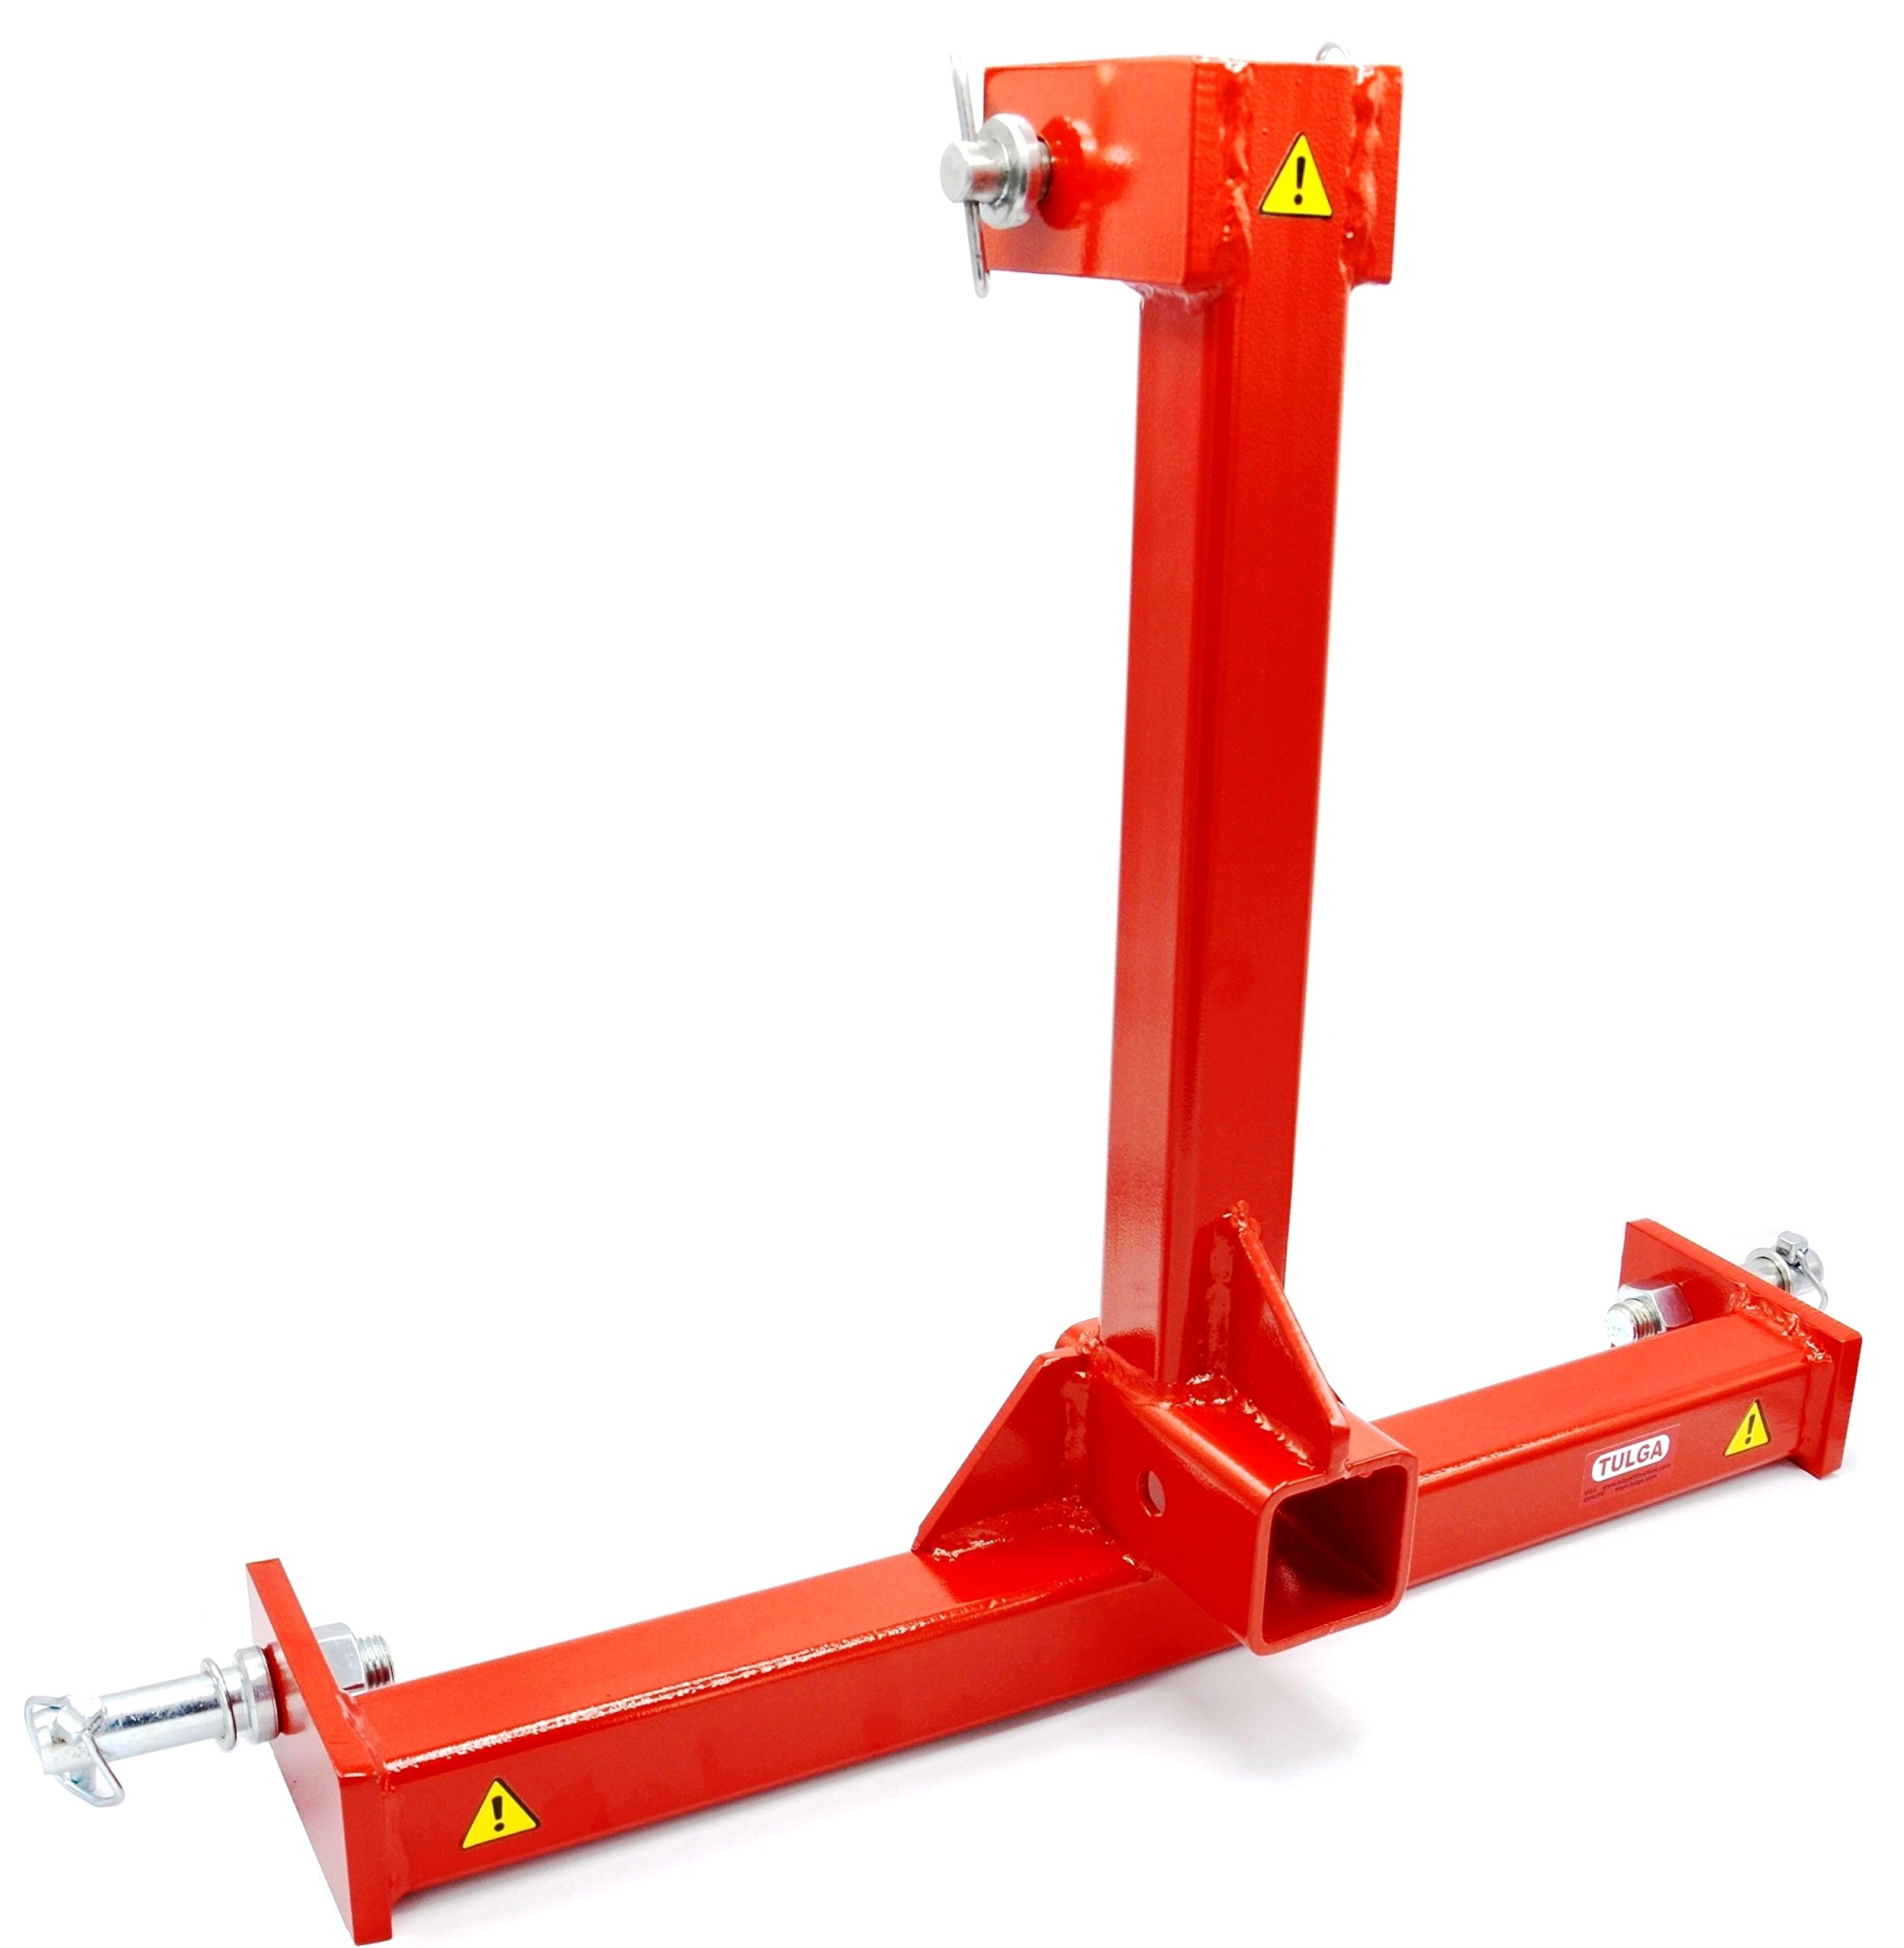 3 Point Trailer Hitch Adapter Category 1 Tow Drawer Convert to 2'' Receiver for BX L3200 Kubota Farm Compact Tractors by Tulga